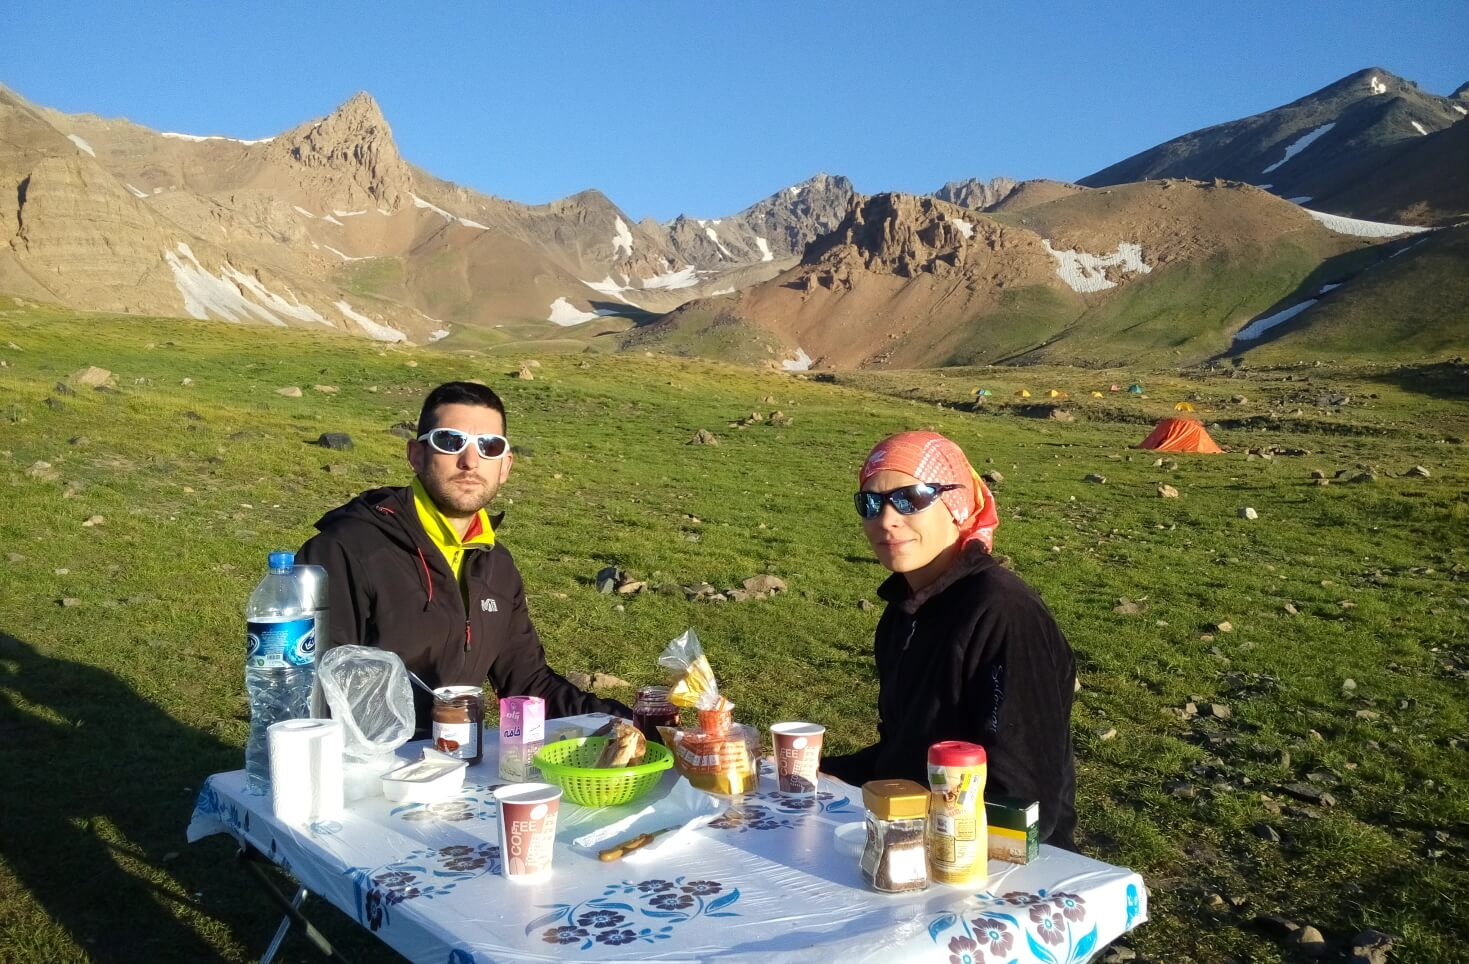 4-Having breakfast in Hesarchal Camp (3800m), Alamkuh South Face